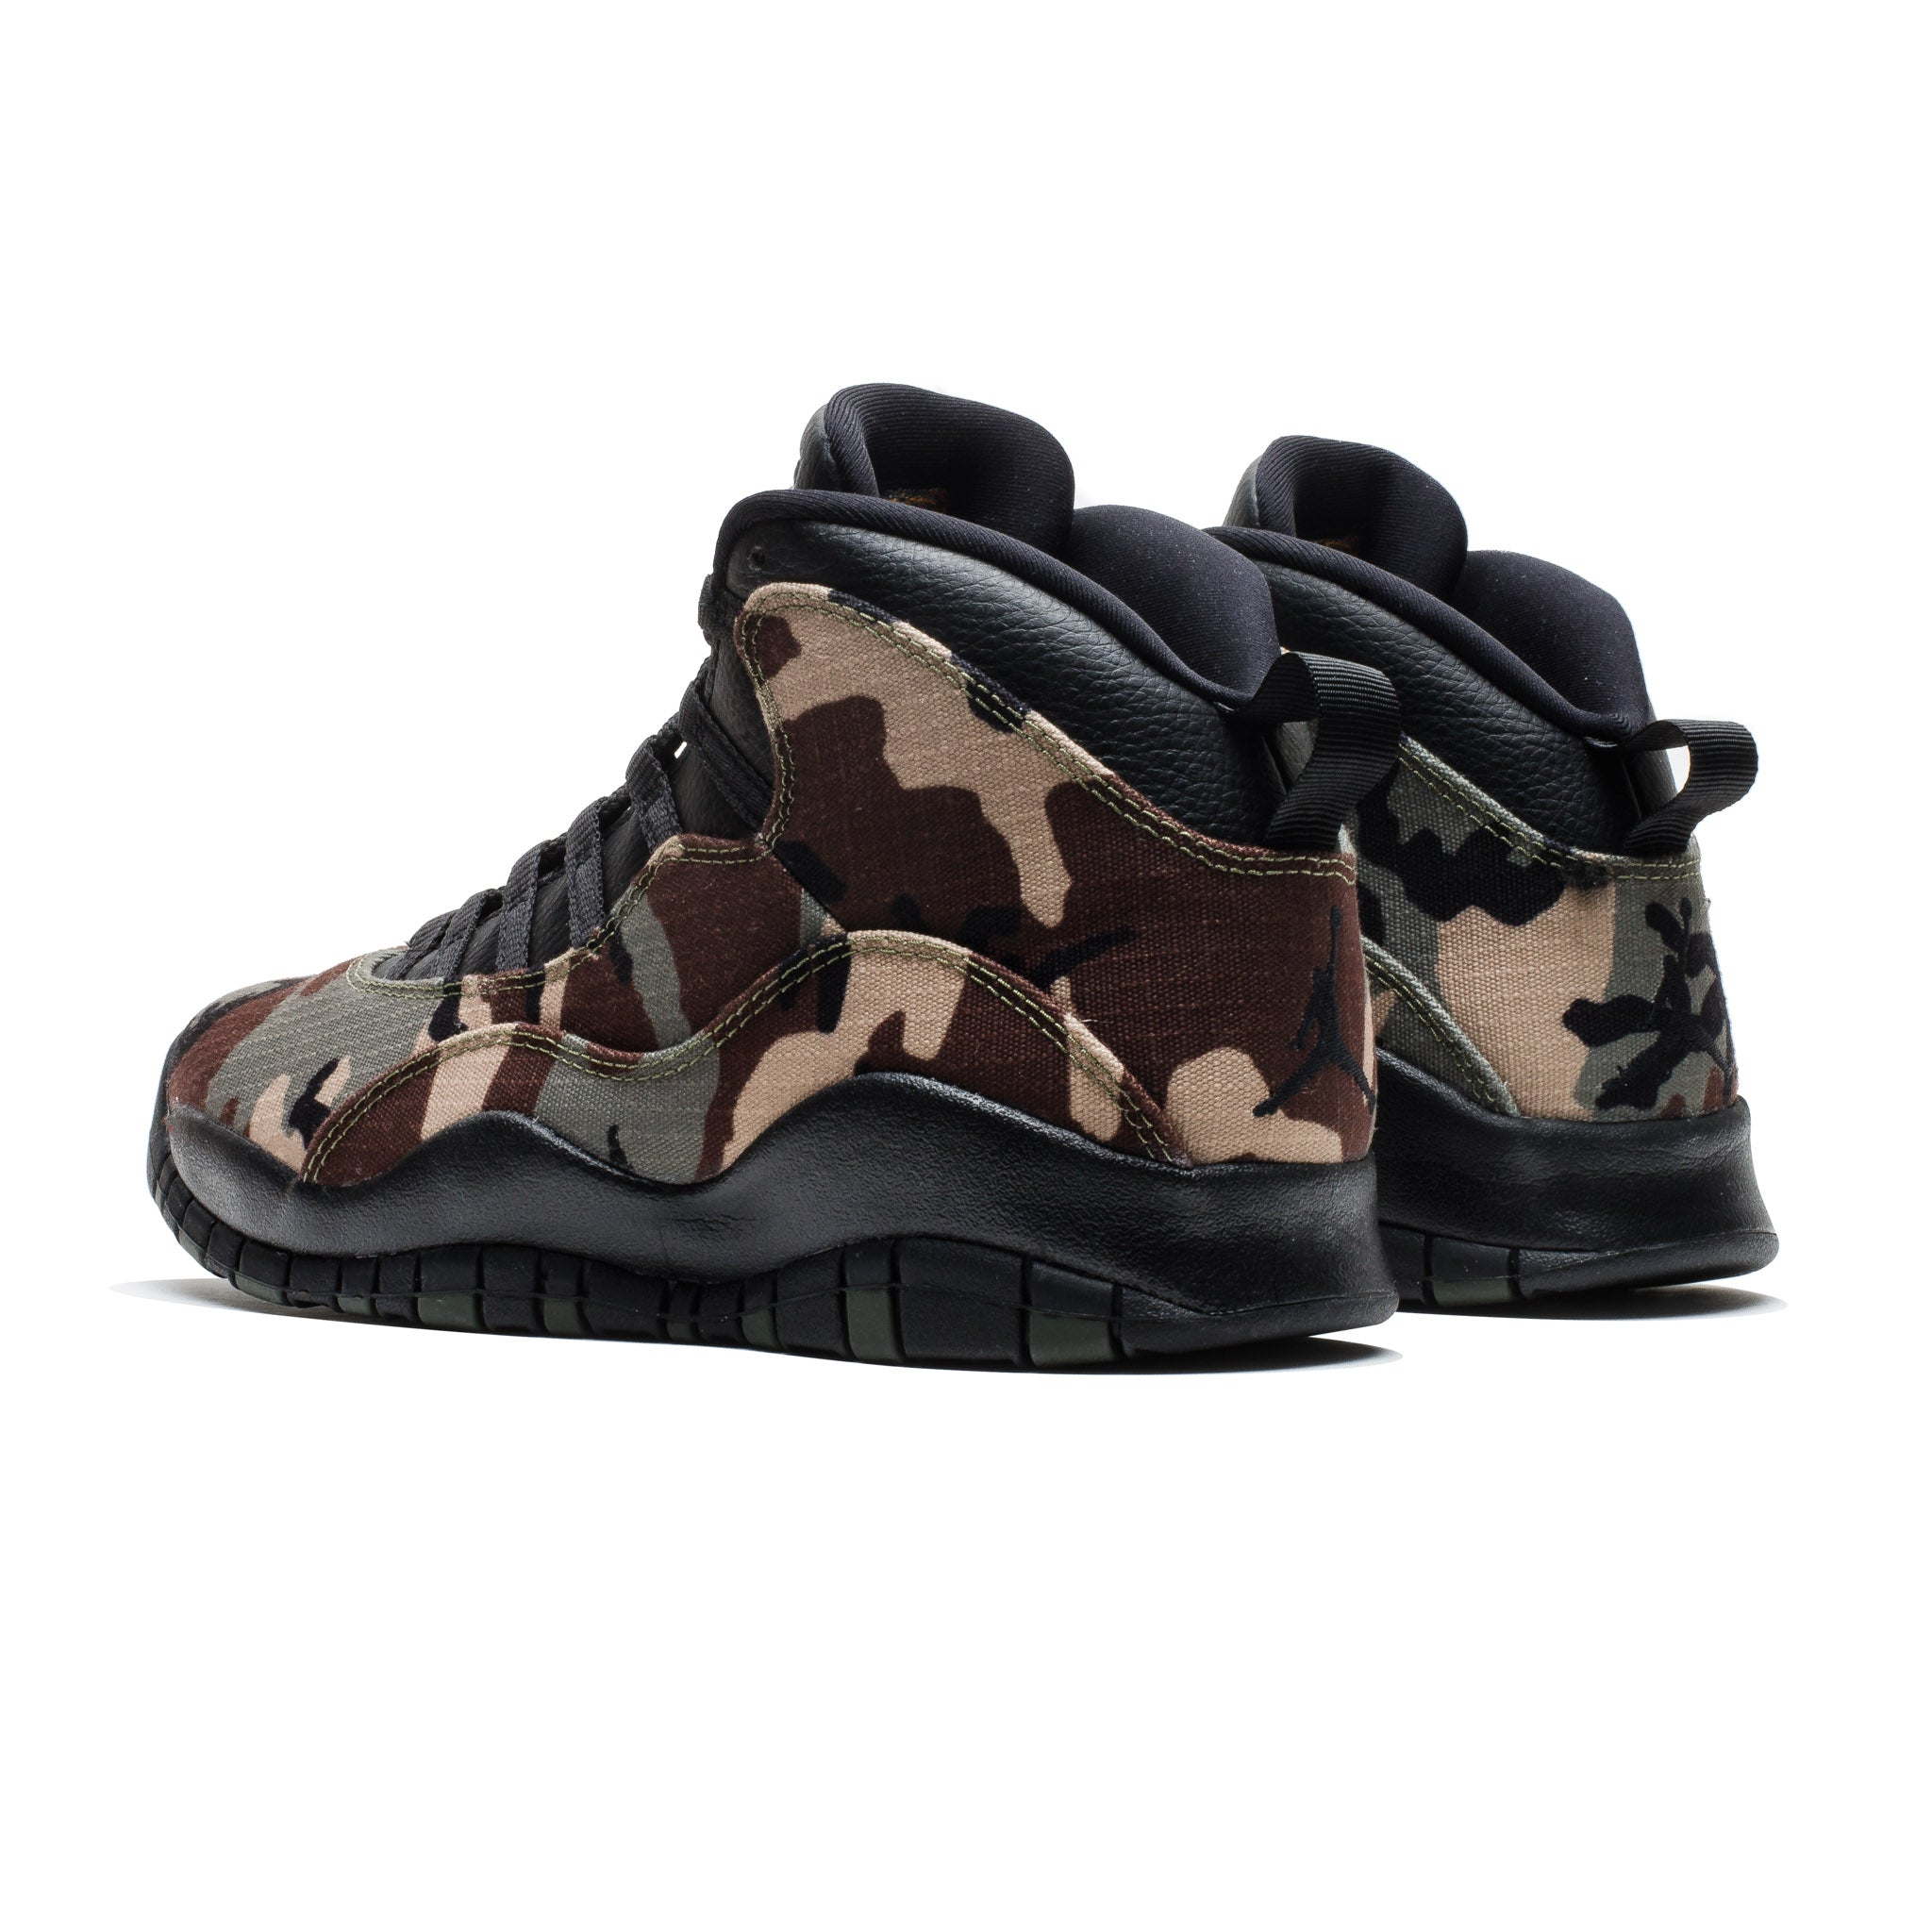 reputable site c0f4c 3da0e Air Jordan 10 Retro 310805-201 Woodland Camo – Capsule Online